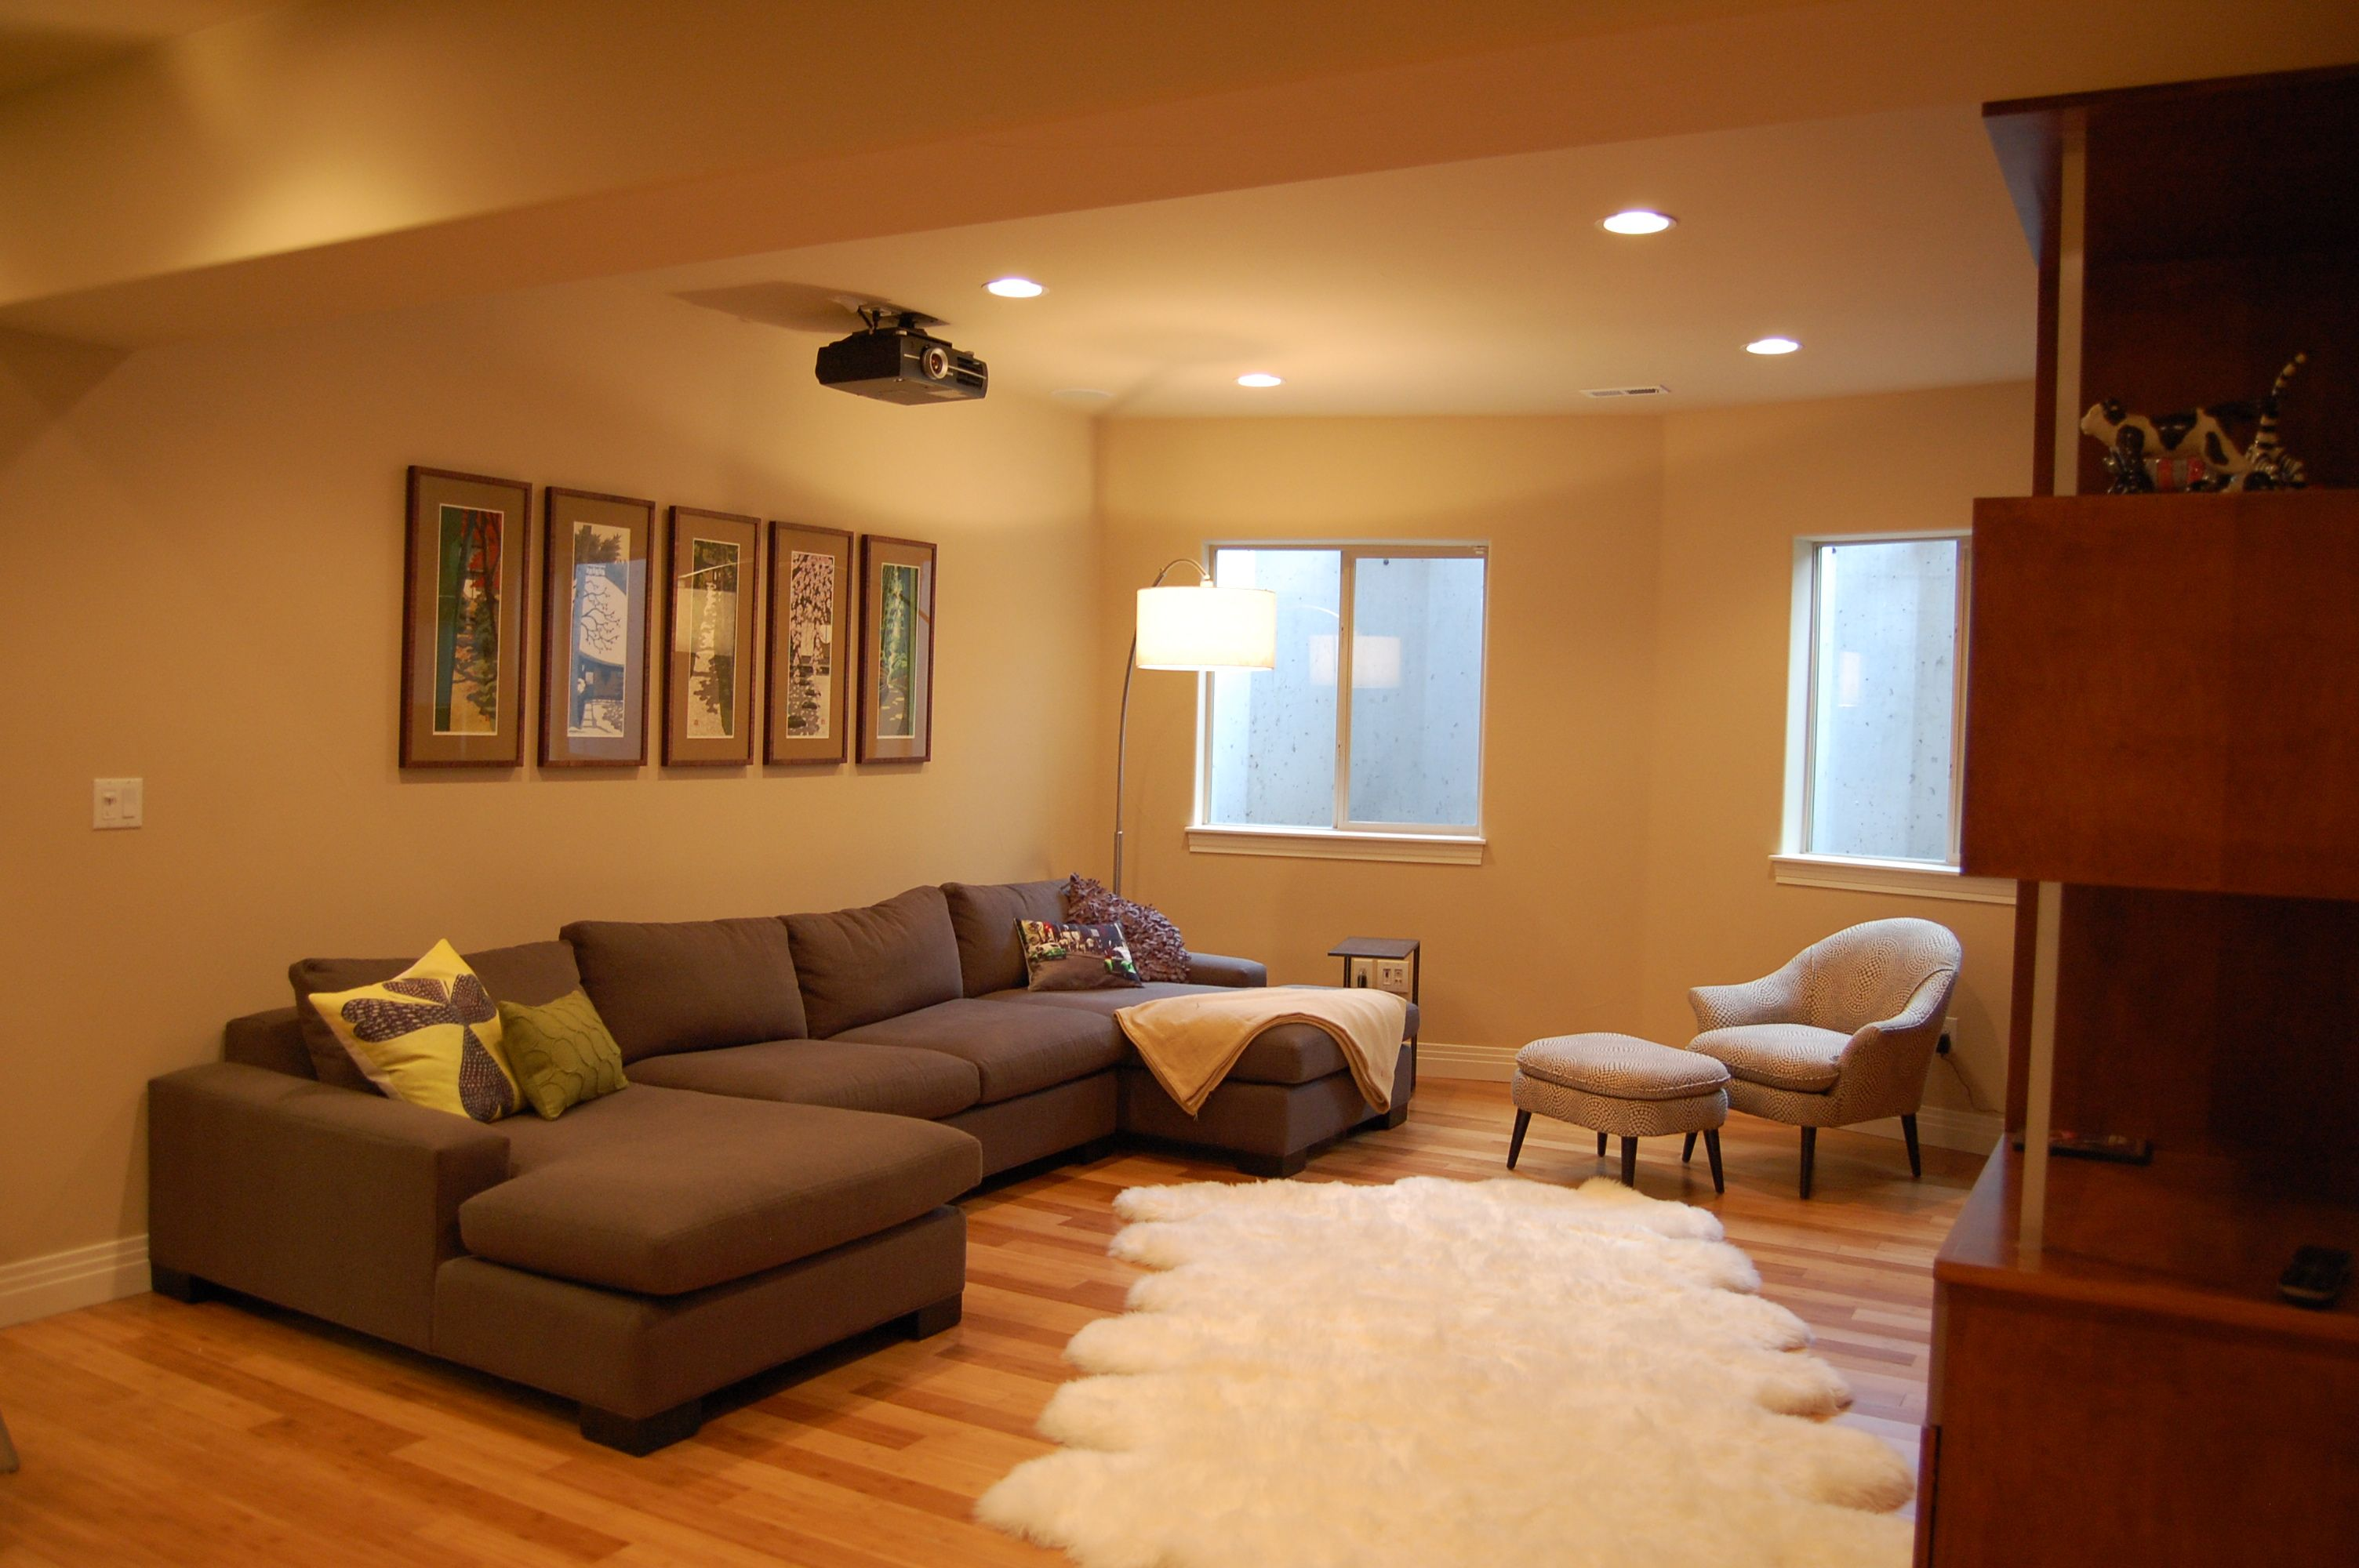 Basement Living Room Designs Classy 23 Most Popular Small Basement Ideas Decor And Remodel  Man Inspiration Design